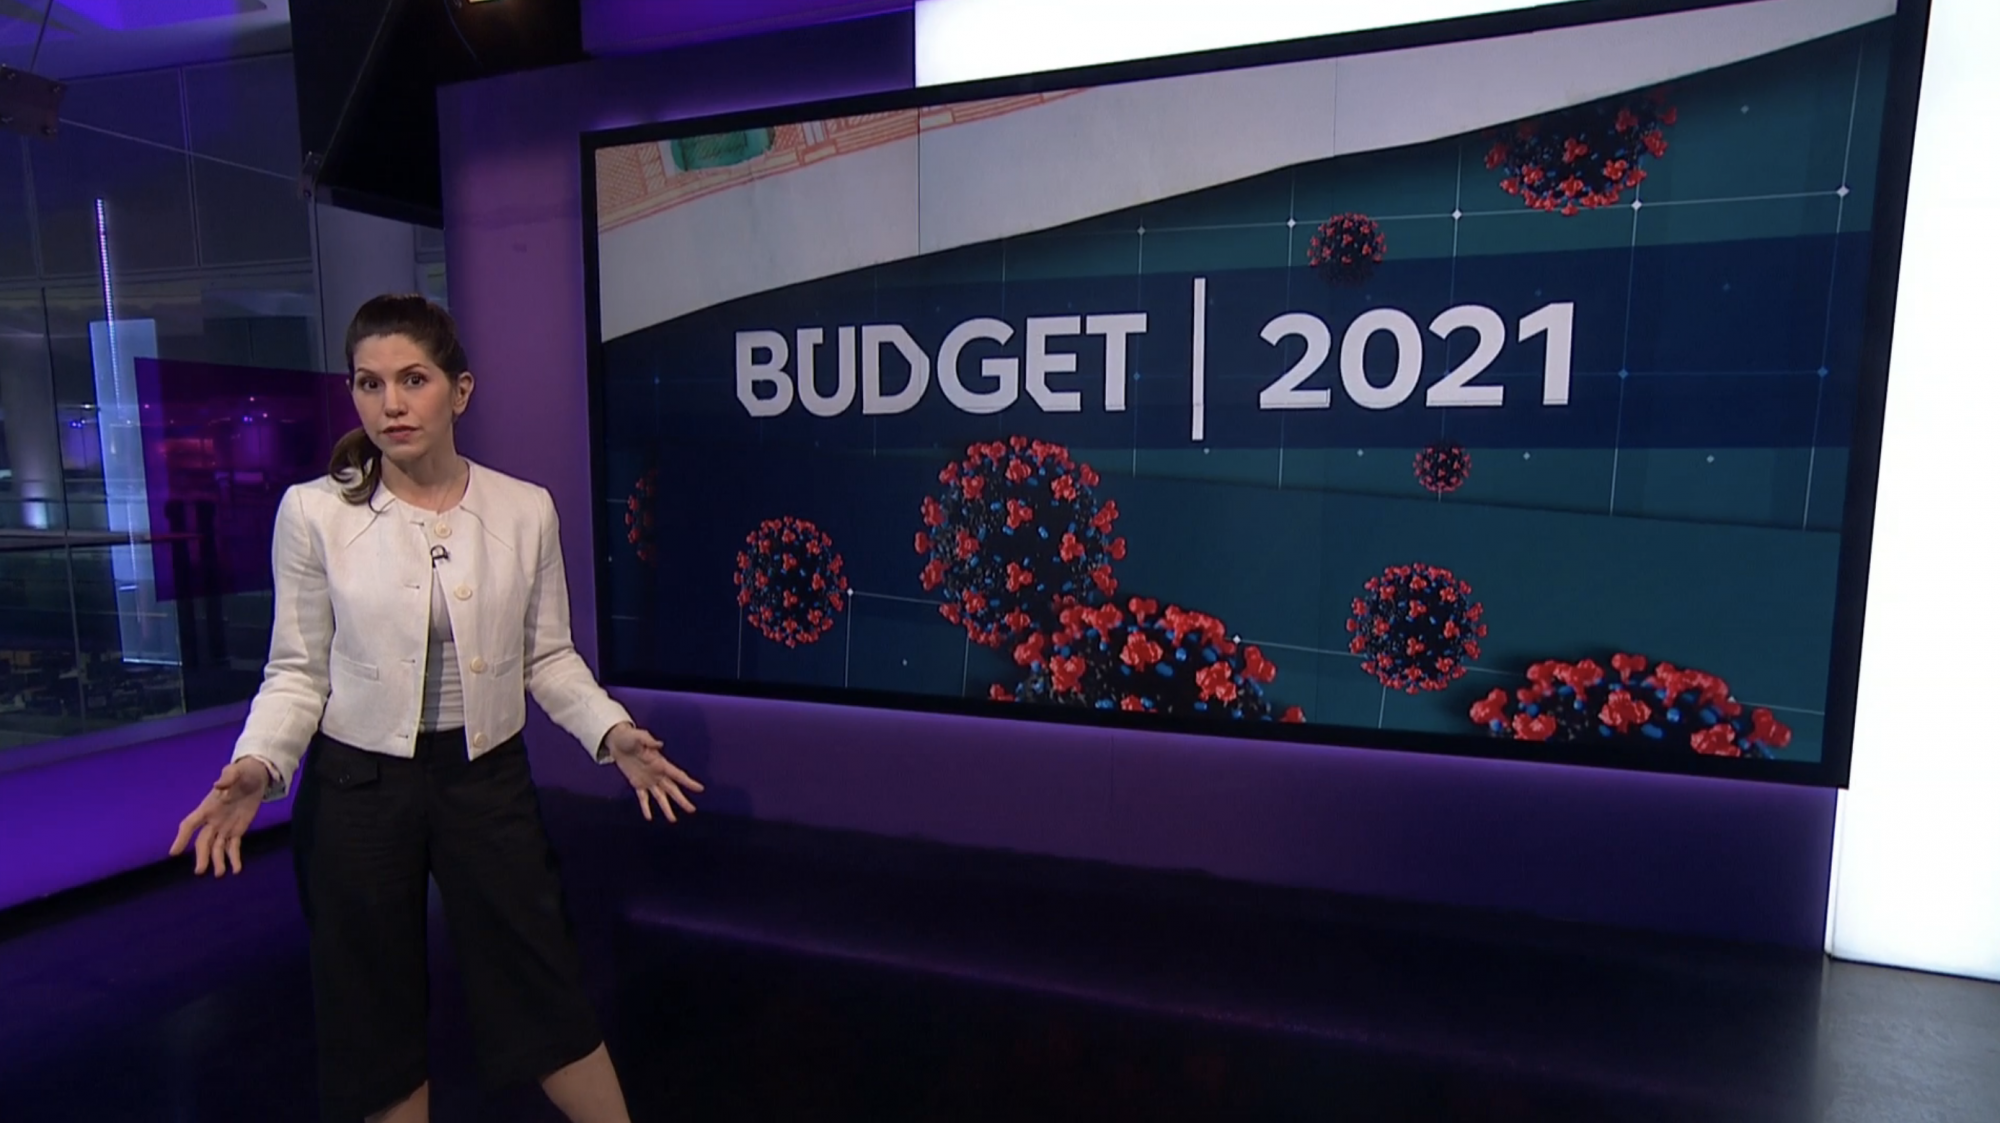 Budget 2021: Spend, spend, spend followed by aggressive tax hikes